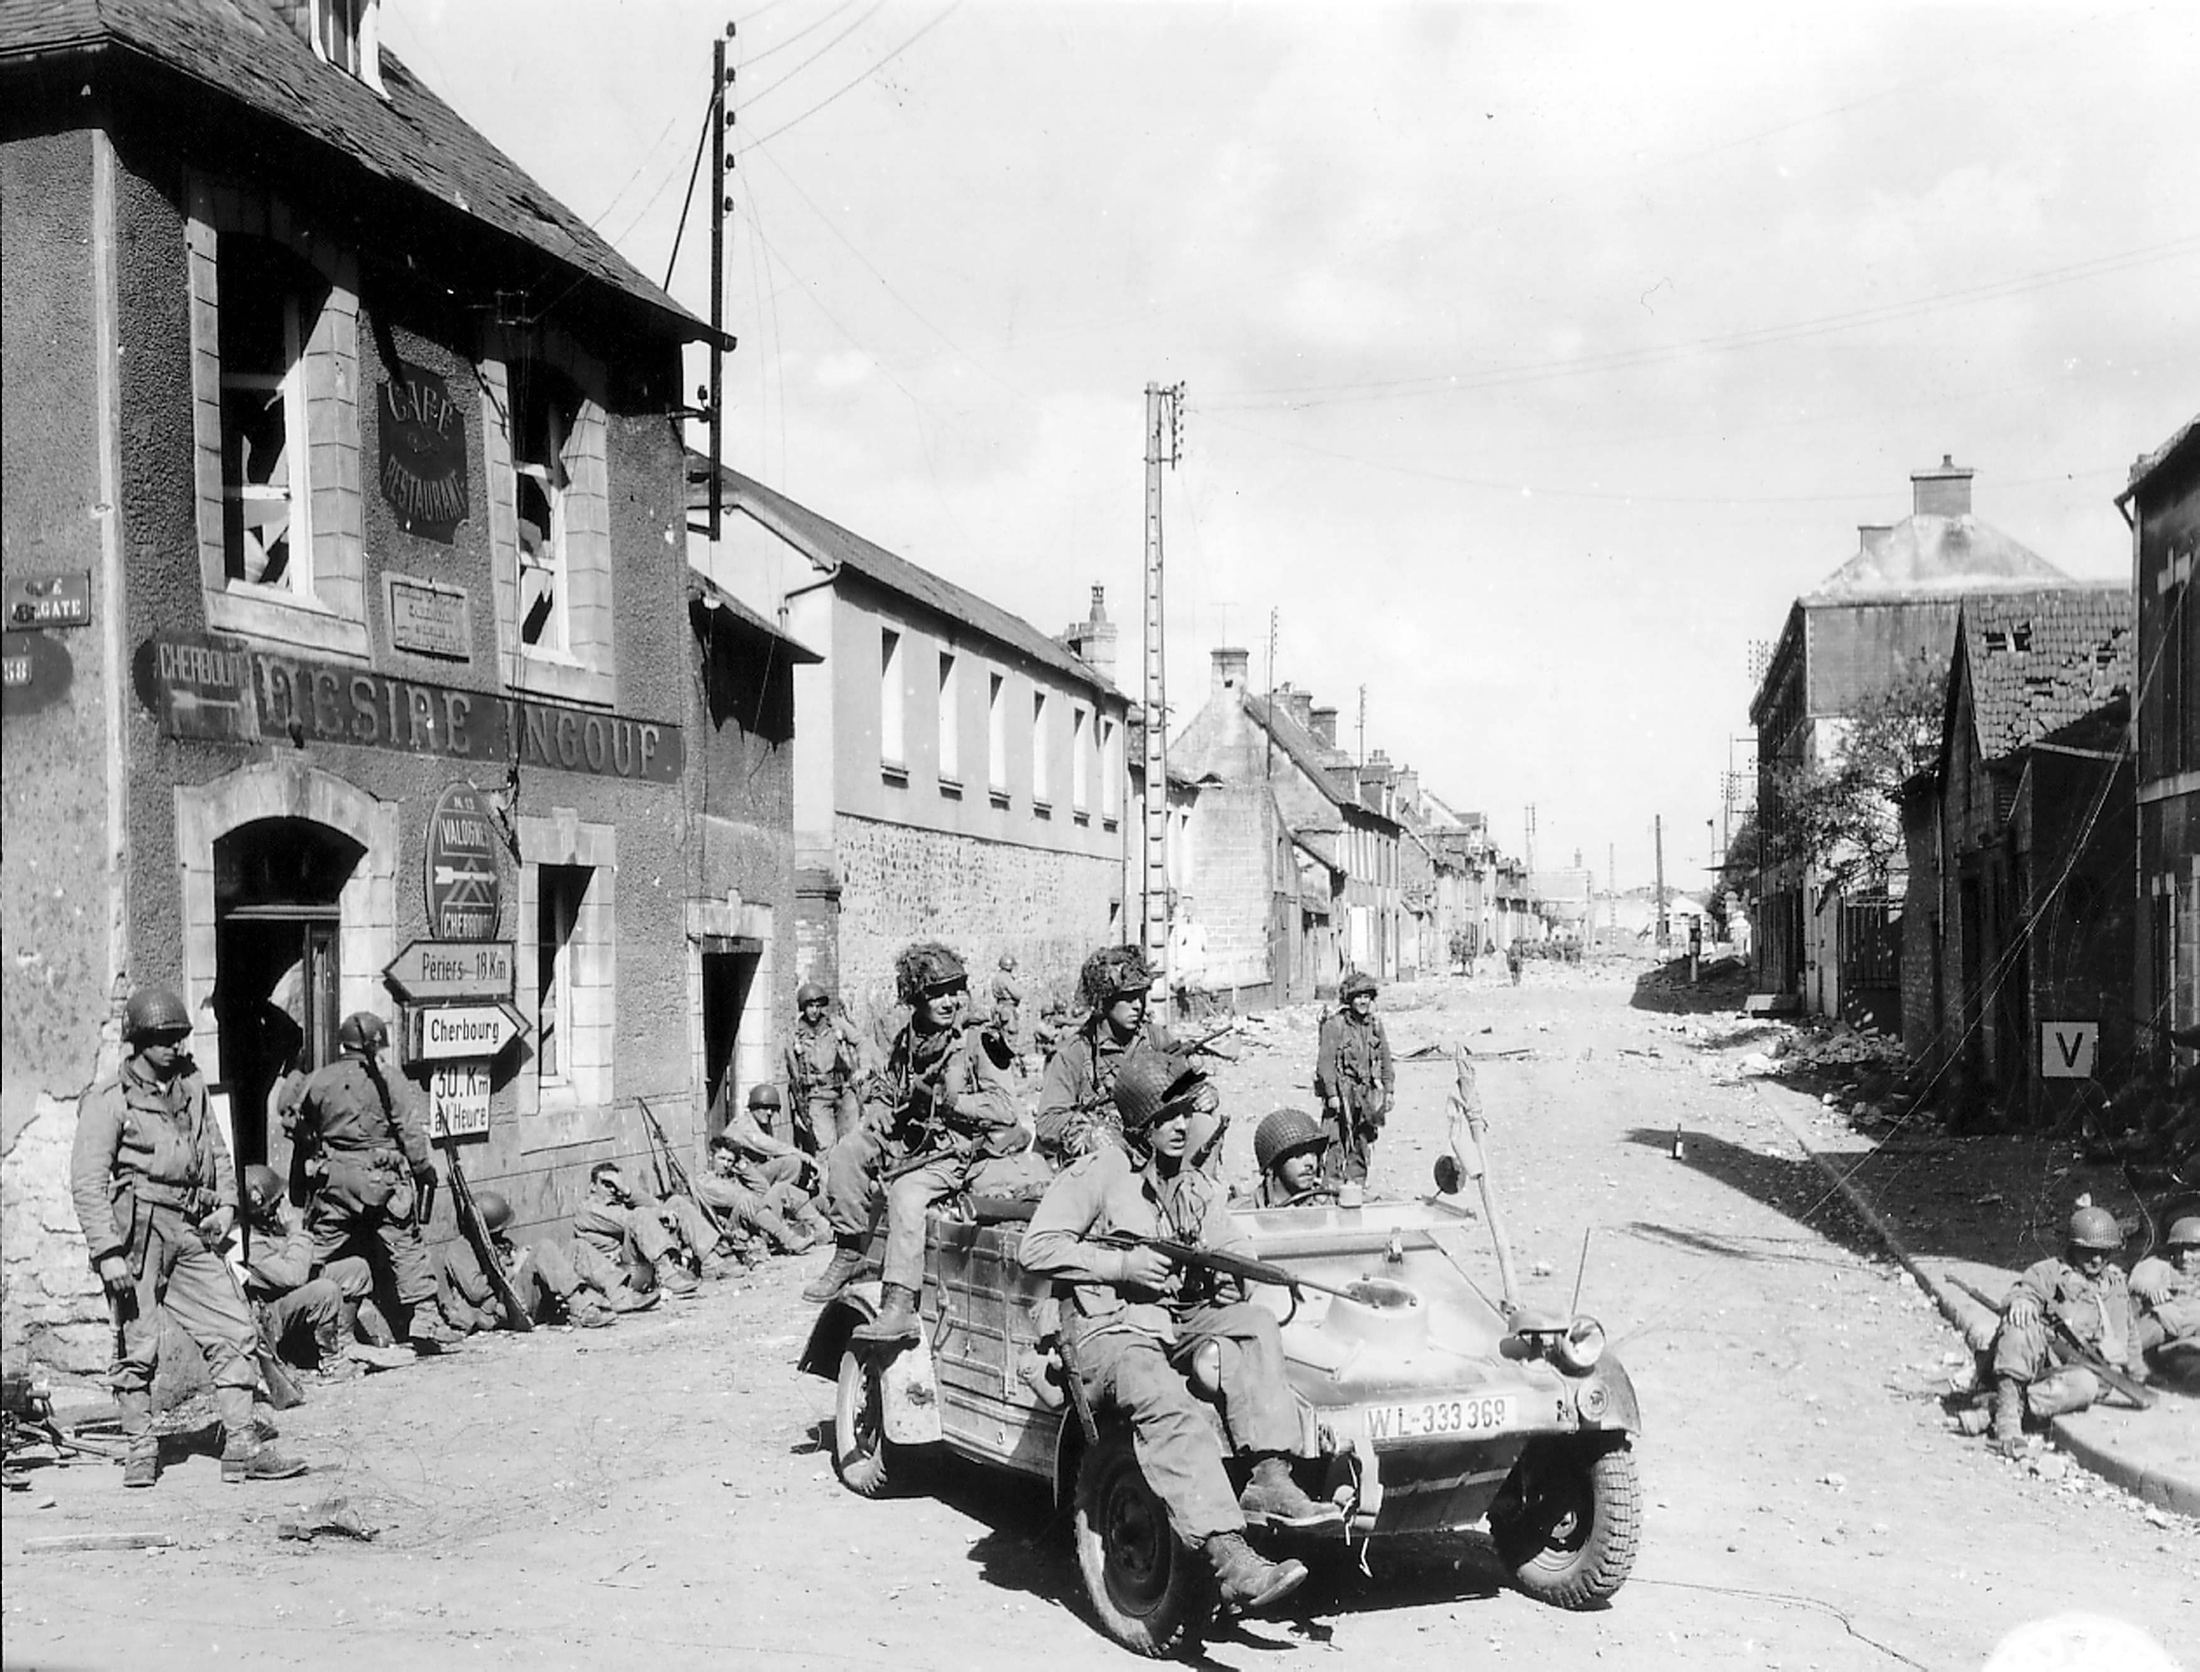 American paratroopers of the 101st Airborne Division driving a commandeered German vehicle in Carentan, June 1944.